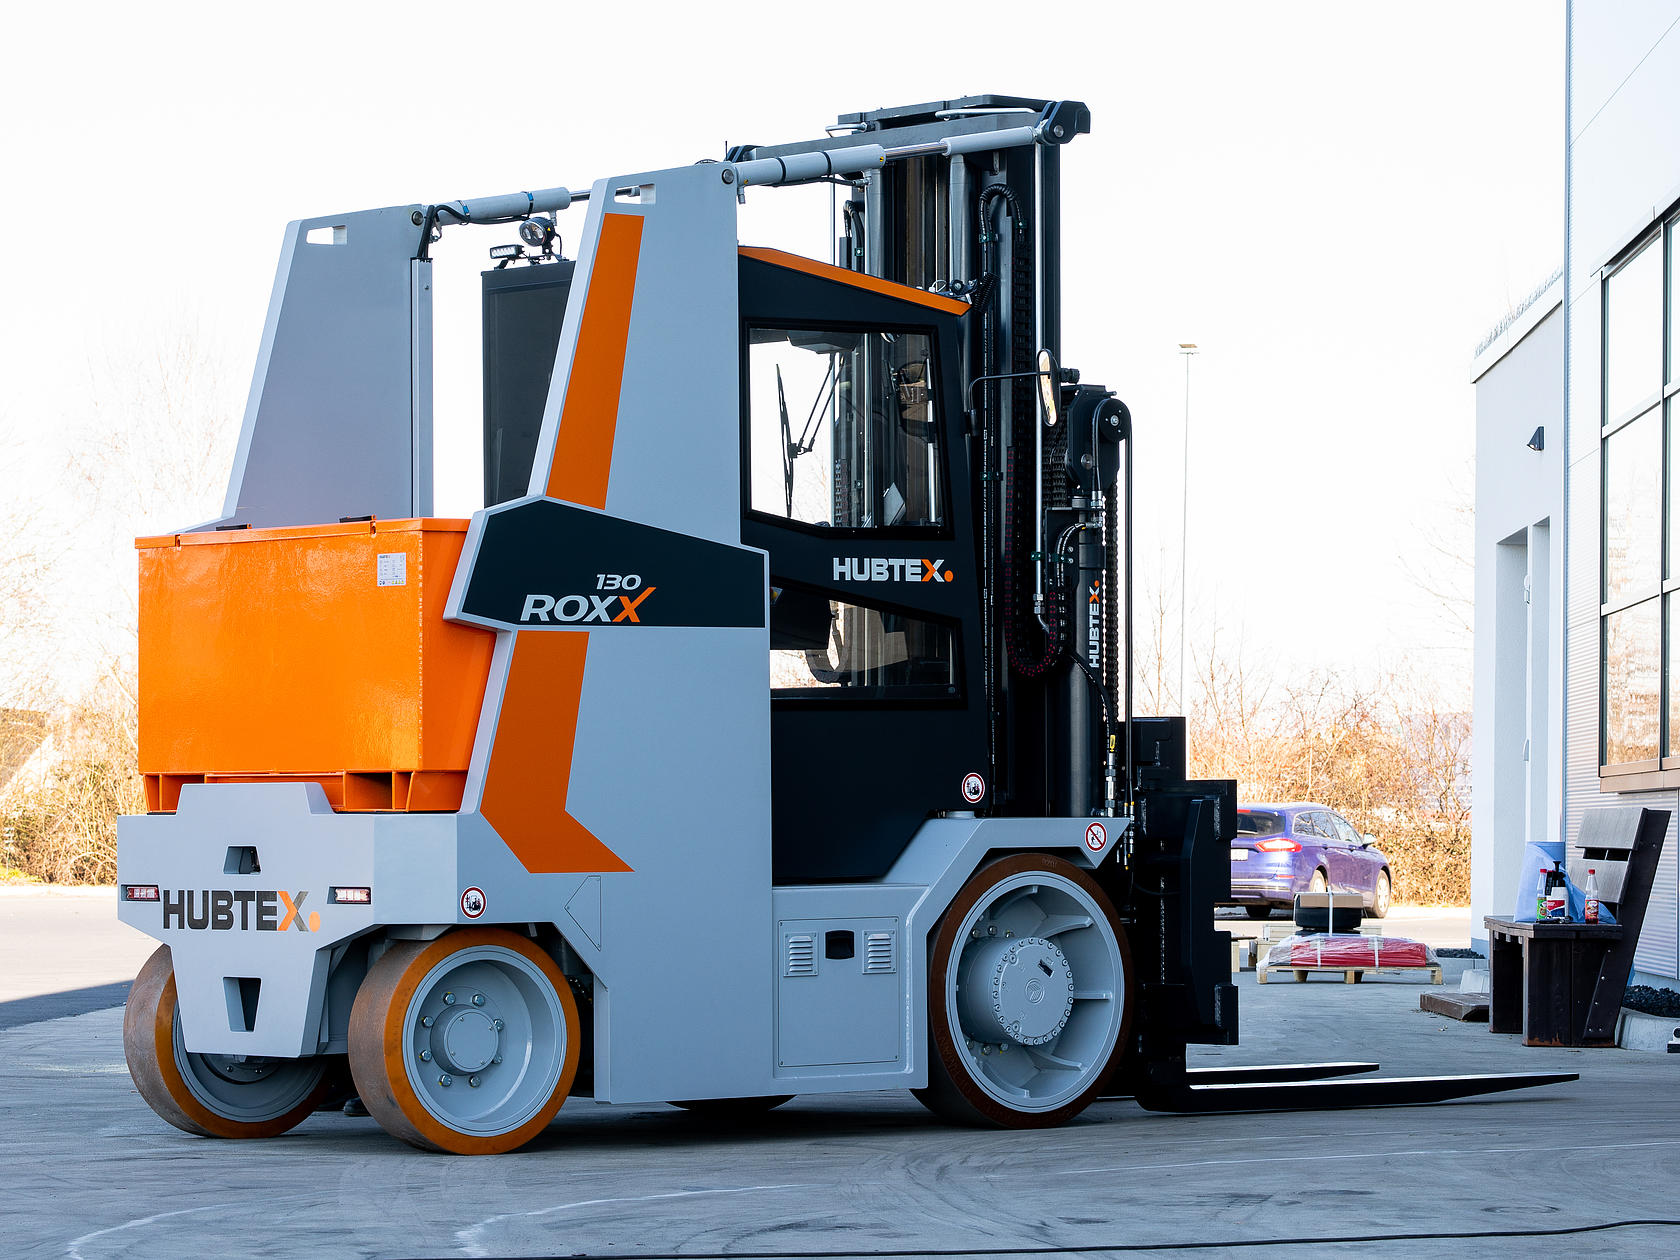 The heavy-duty compact frontlifts are strong, robust and extremely maneuverable.